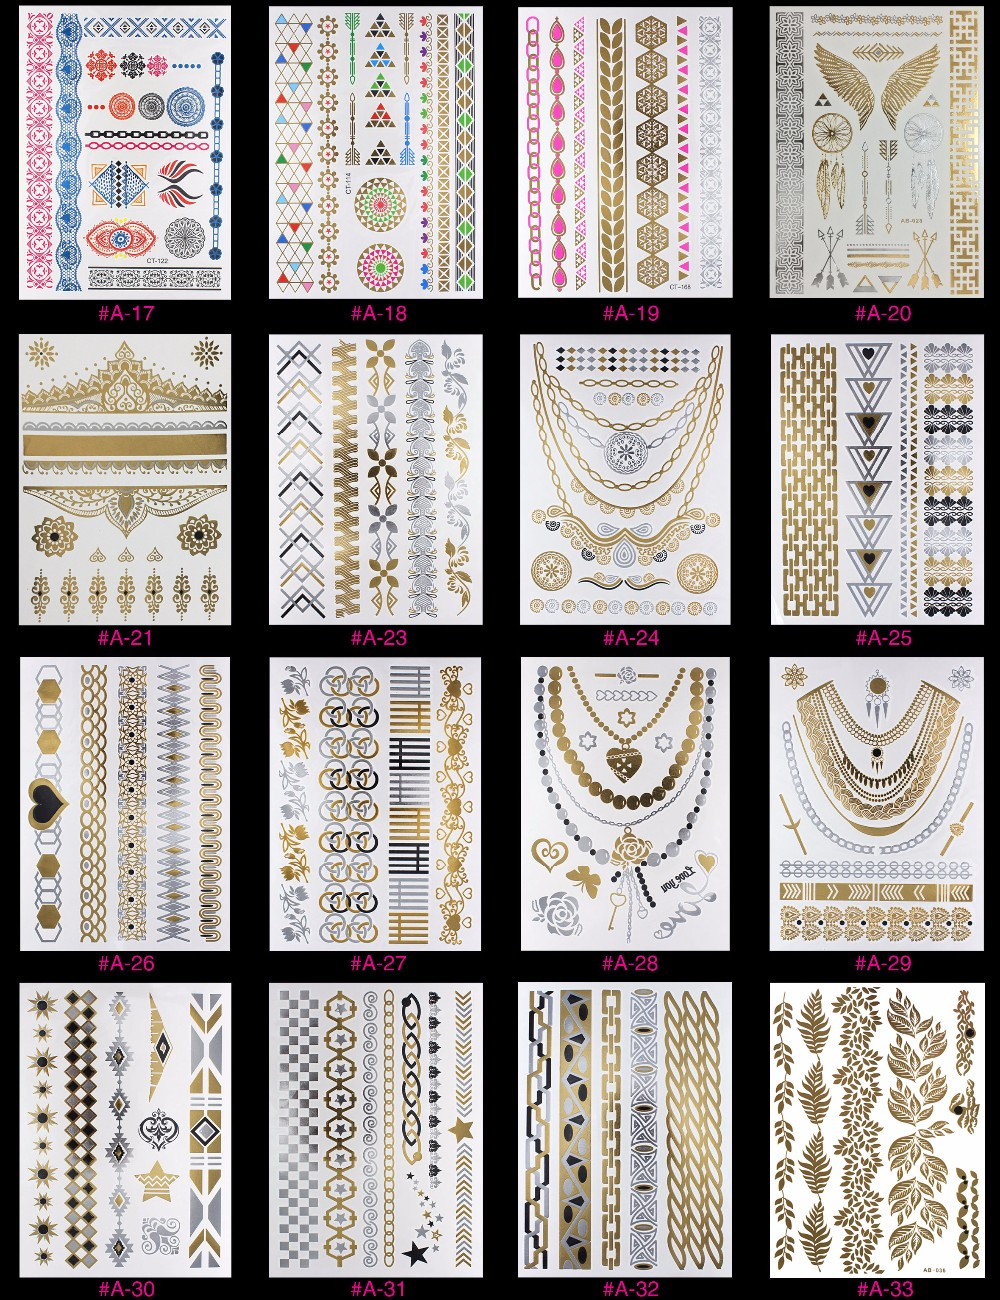 New Design Flash Removable Waterproof Gold Tattoos Metallic Temporary Tattoo Stickers Temporary Body Art Tattoo 13